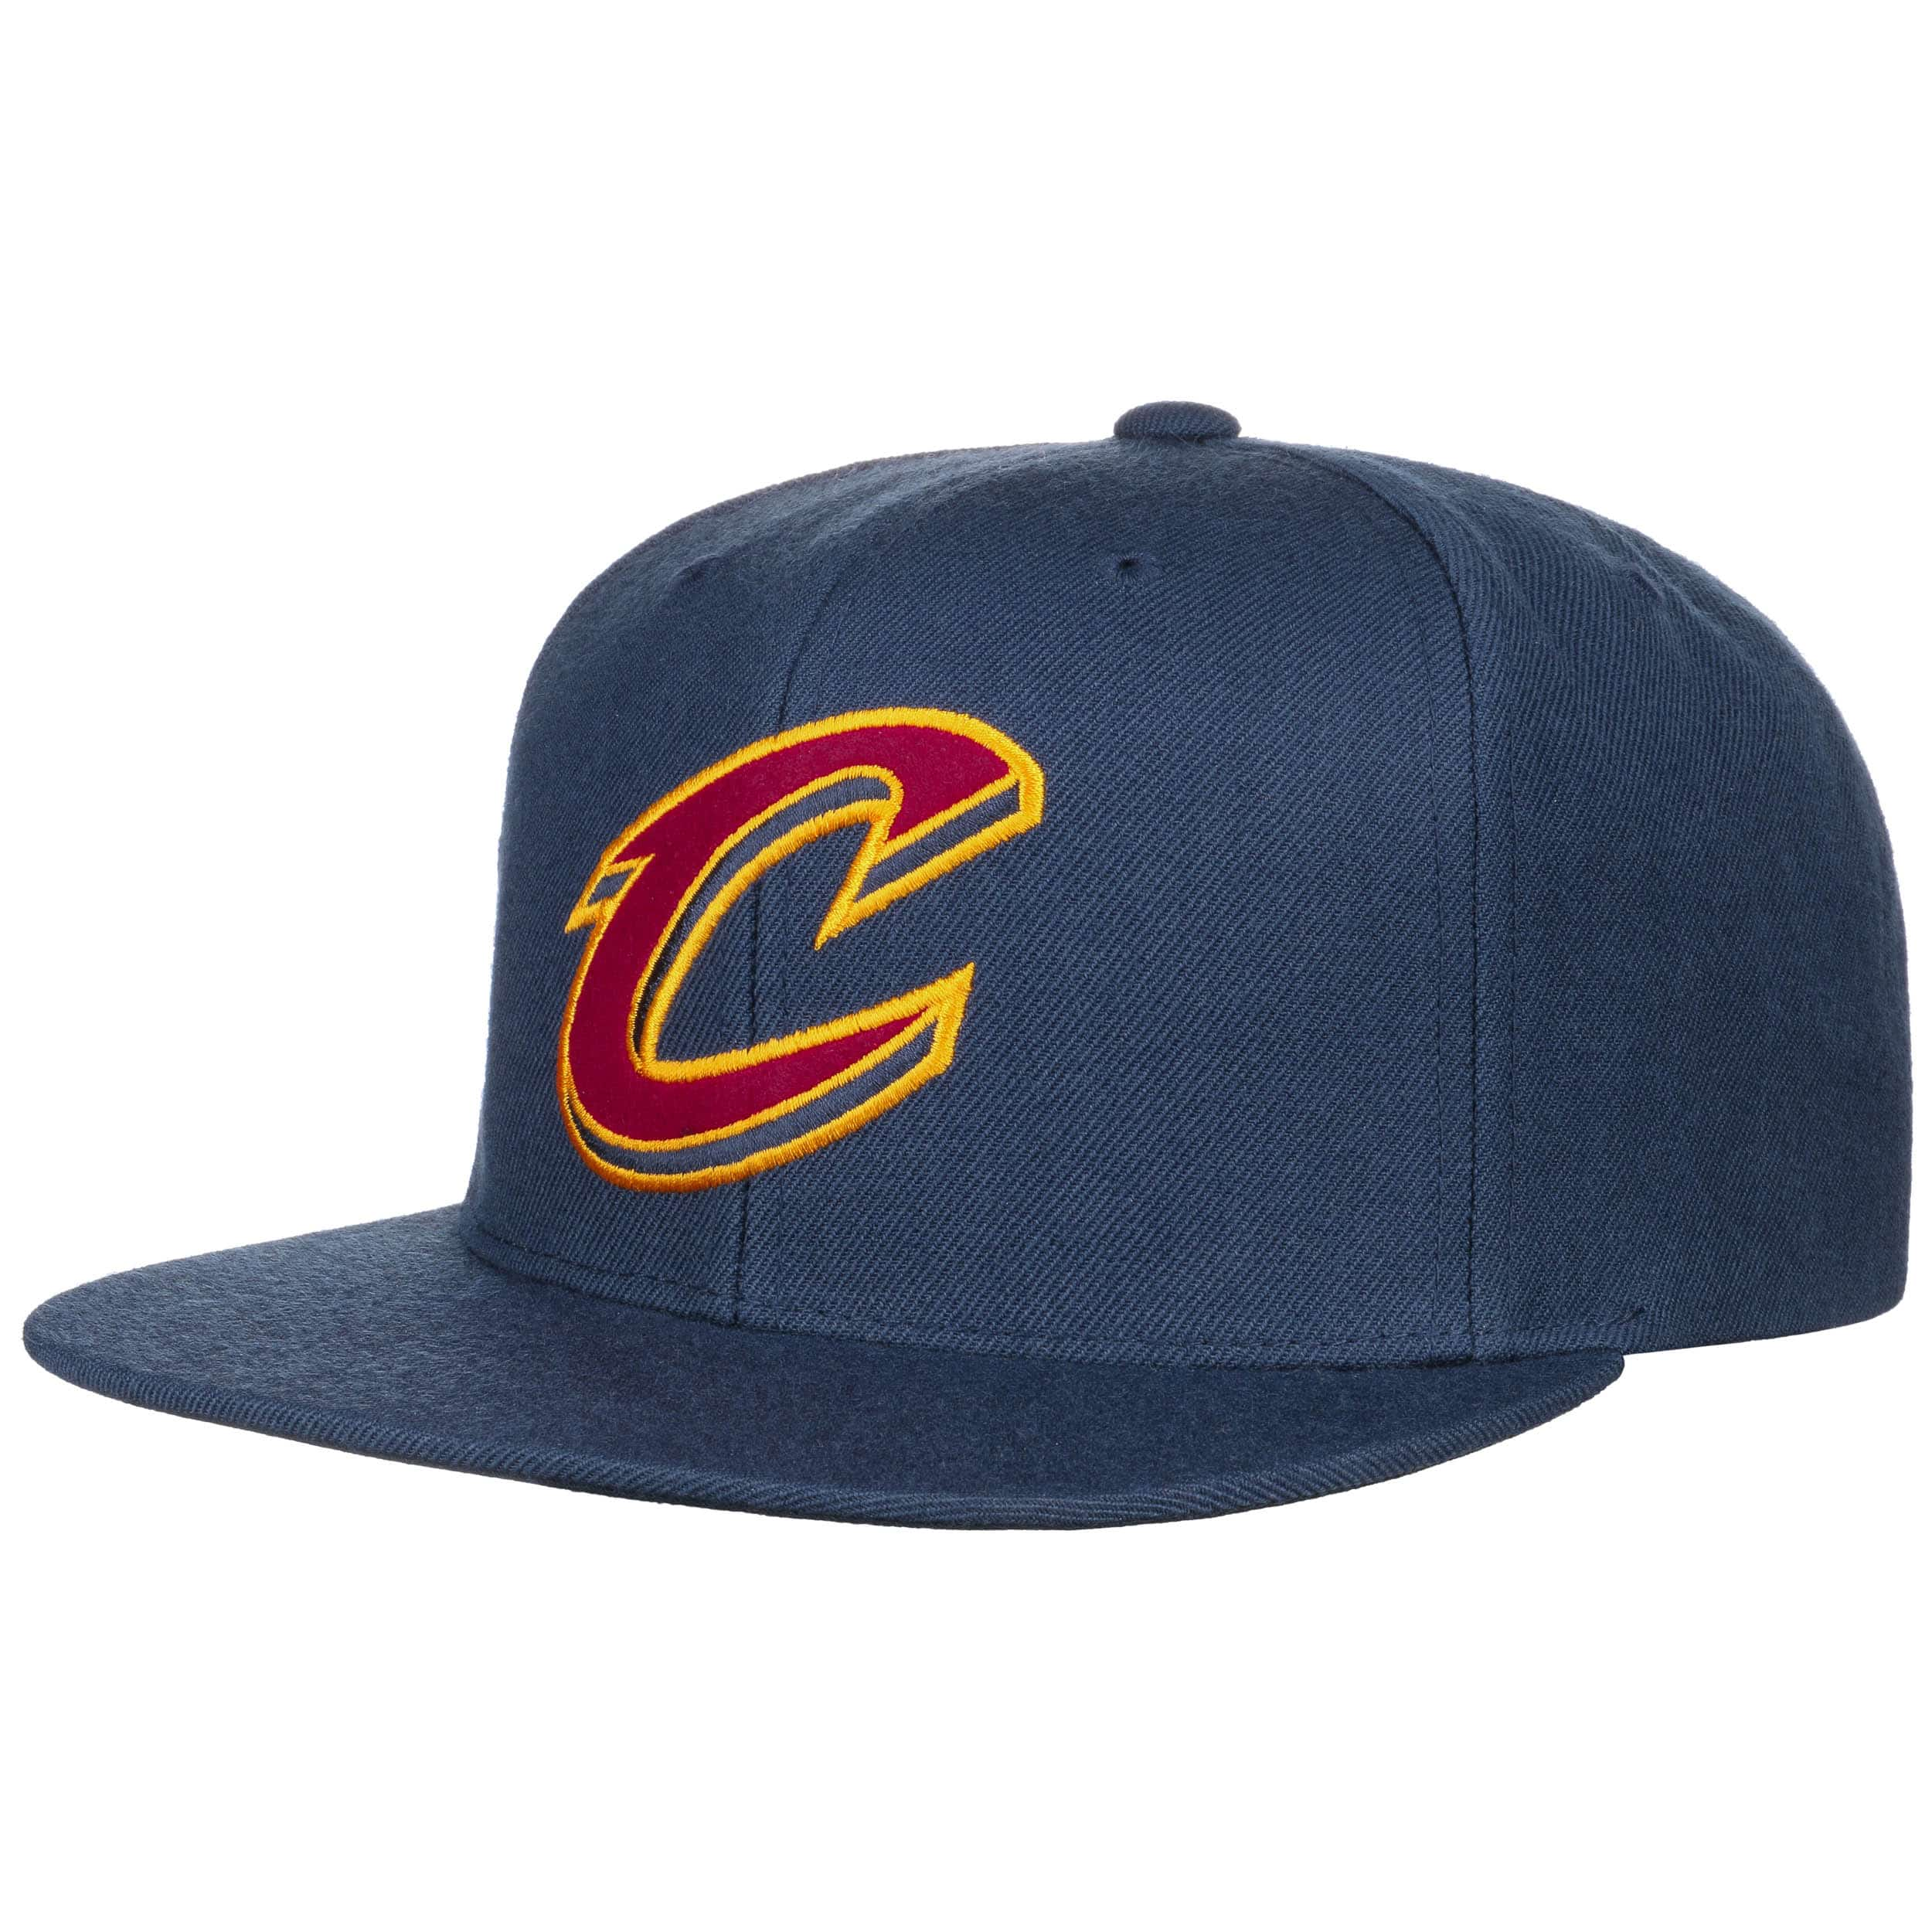 80432a805 Under Visor Cavs Cap by Mitchell & Ness